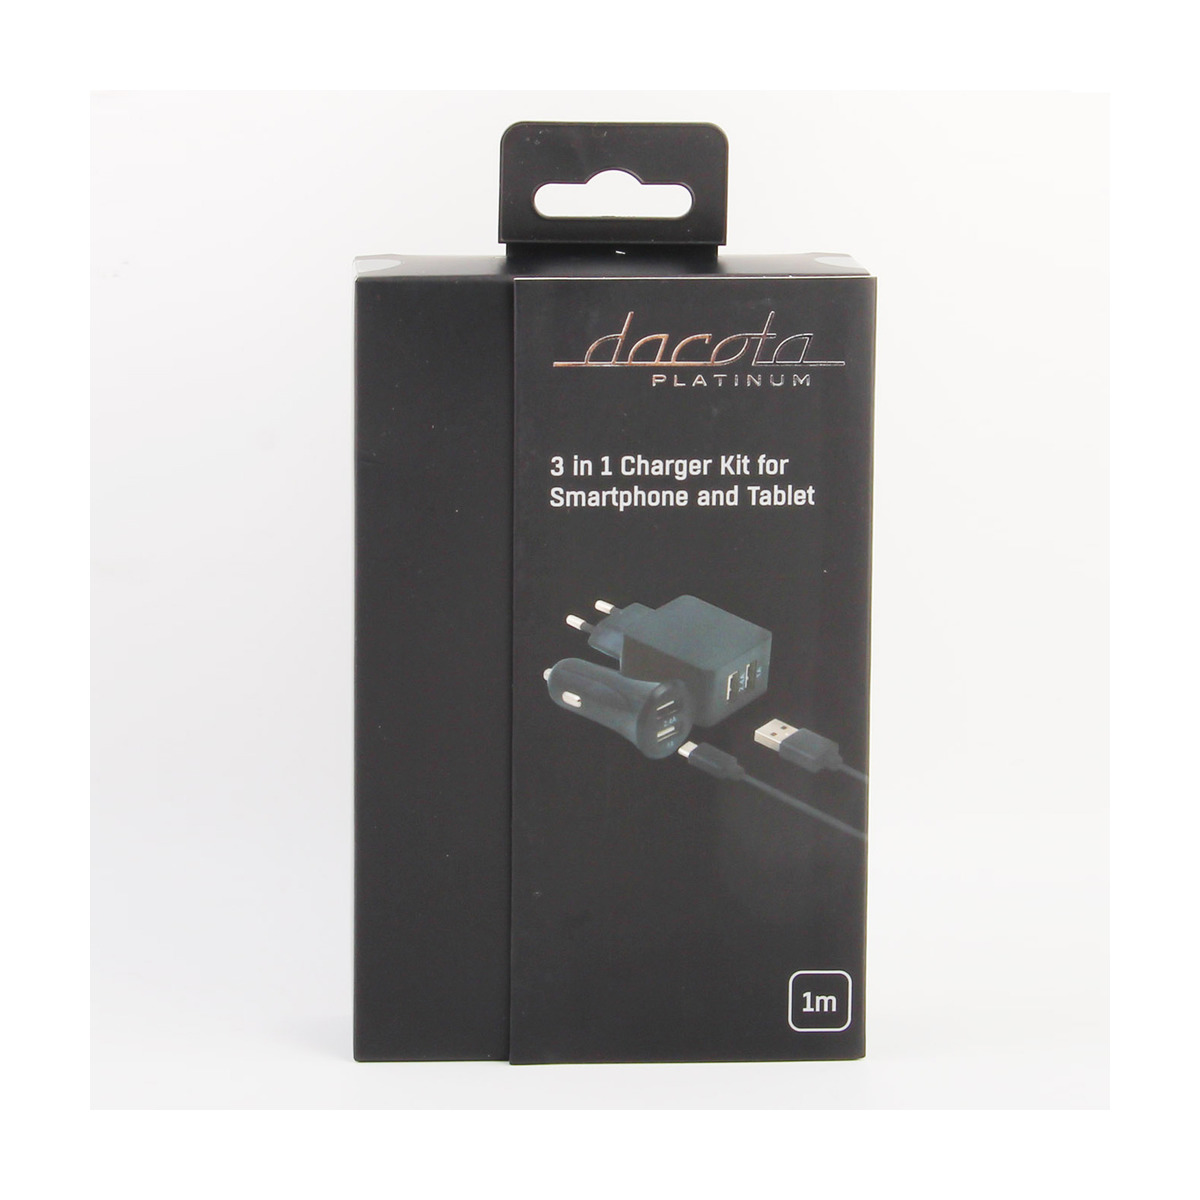 DACOTA P 3IN1 CHARGER KIT MUSB Power.no